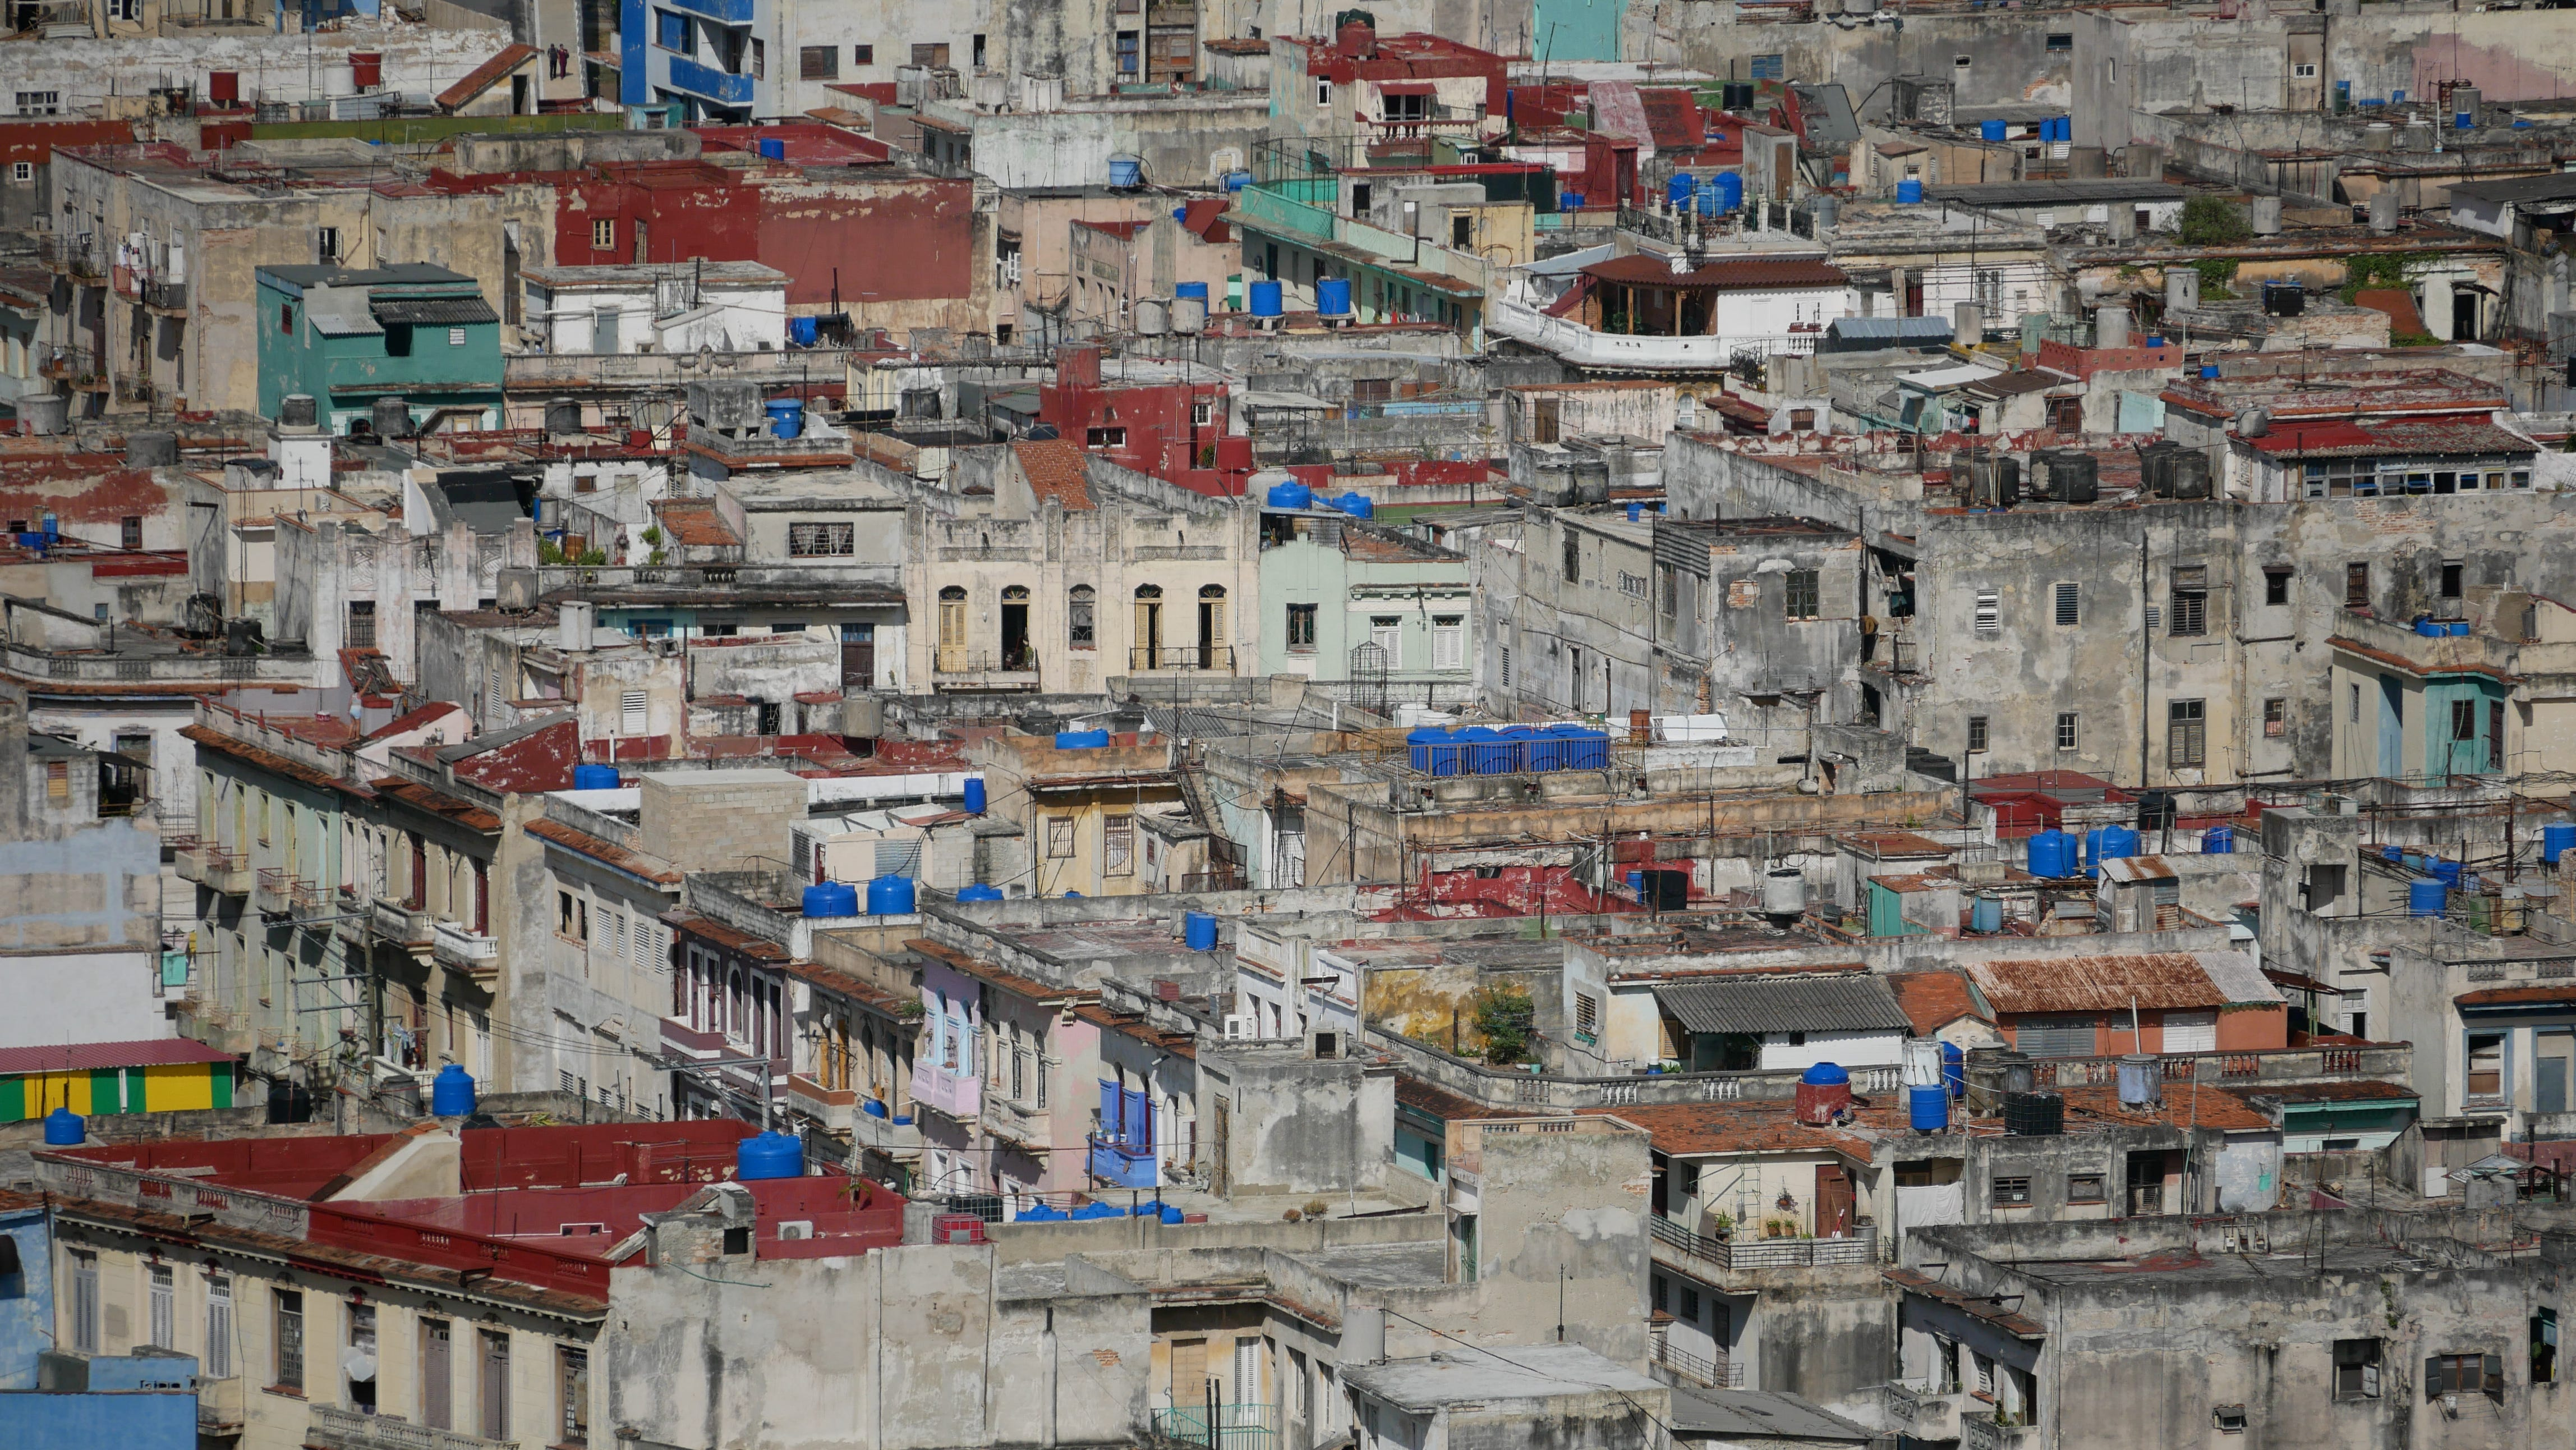 Havana, a city of about 2 million people, had a shortage of 206,000 homes in 2016, official figures show.